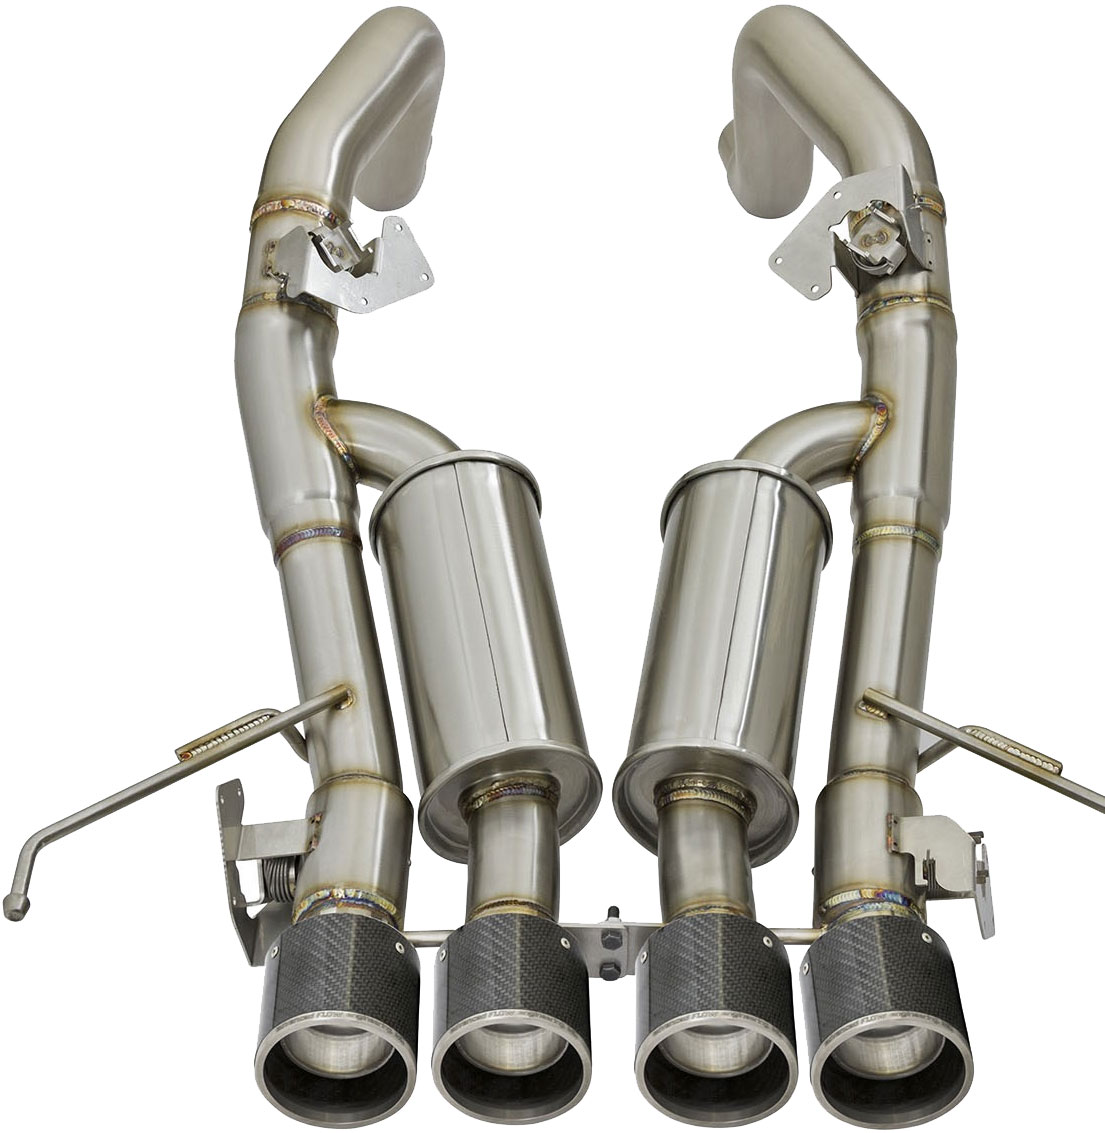 aFe Power - MACH Force-XP 3in Stainless Steel Axle-Back Exhaust System